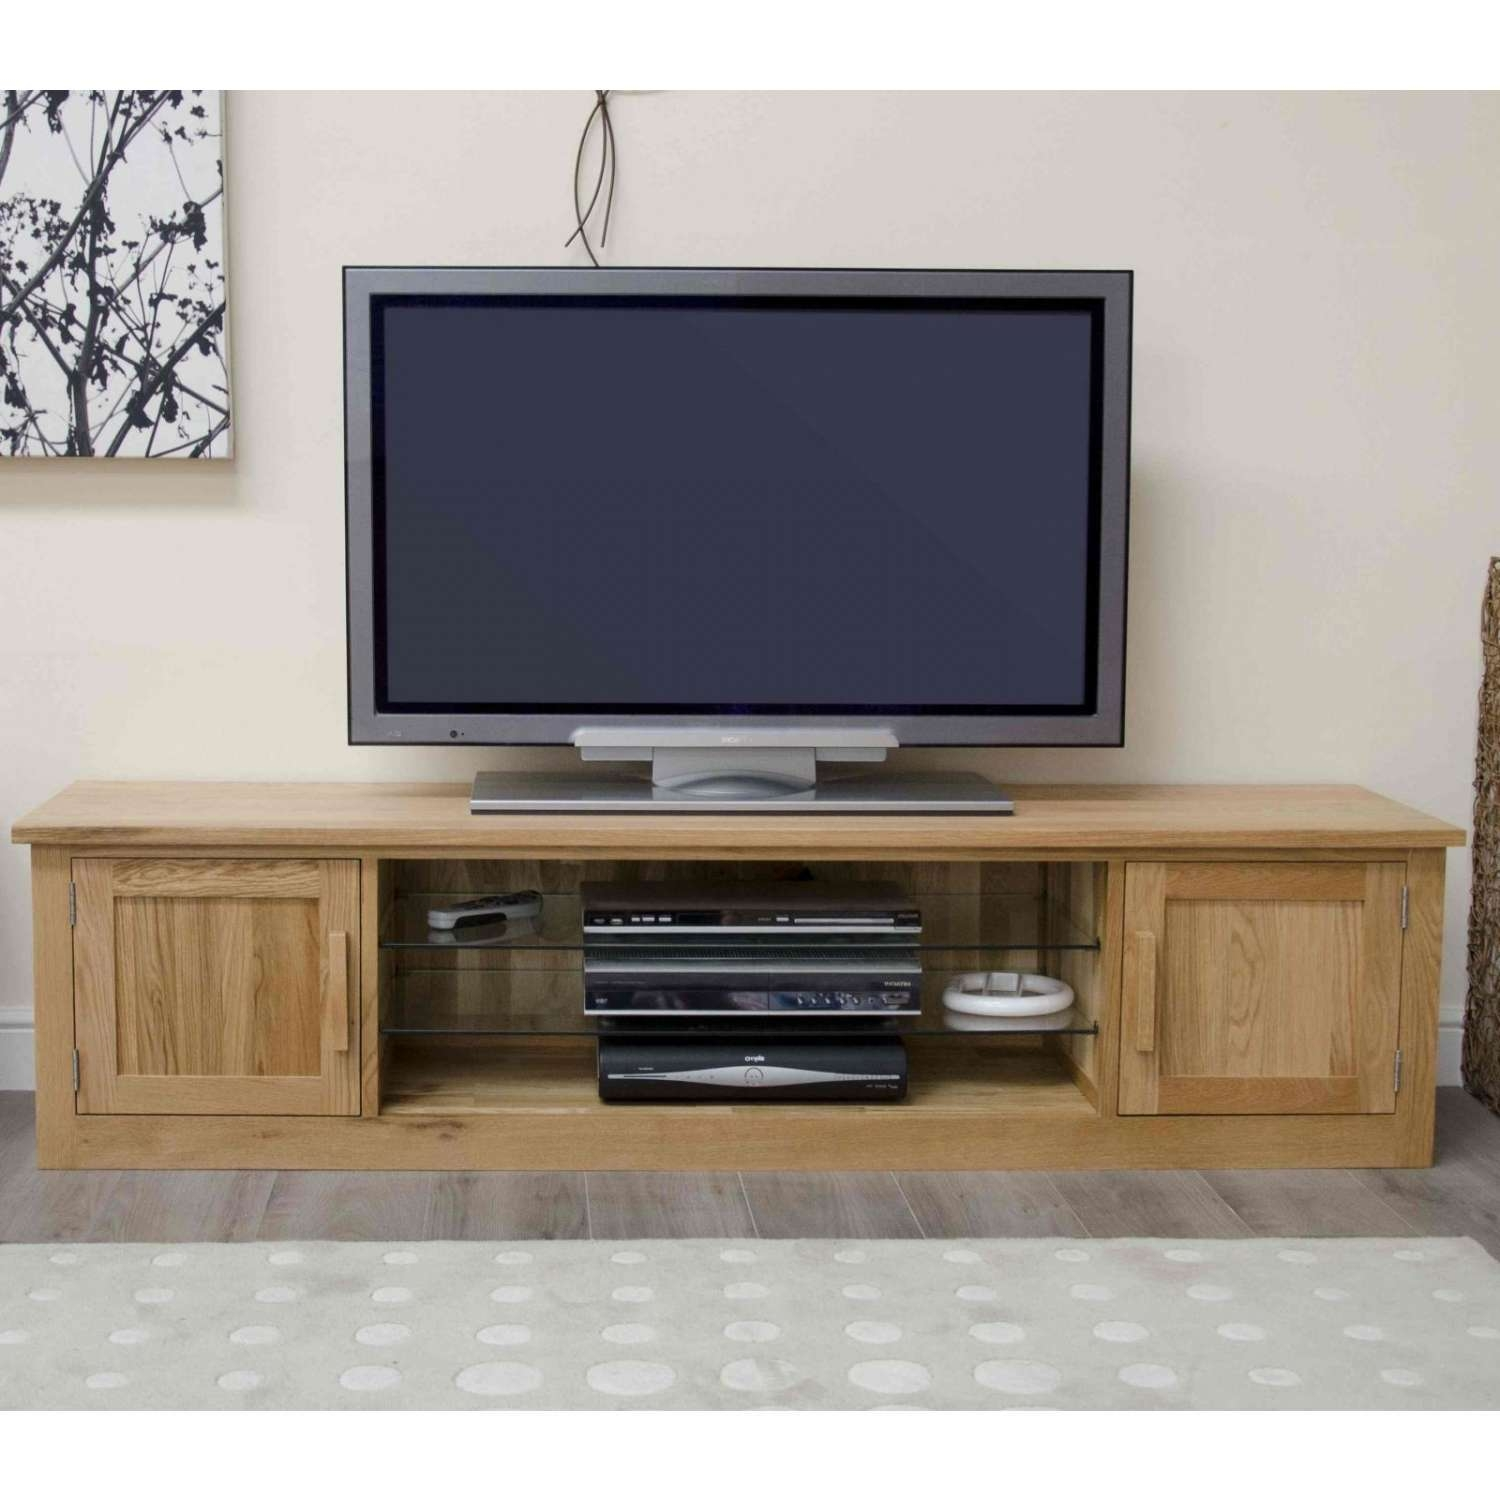 Arden Solid Oak Living Room Furniture Large Widescreen Tv Cabinet Inside Widescreen Tv Cabinets (View 1 of 20)